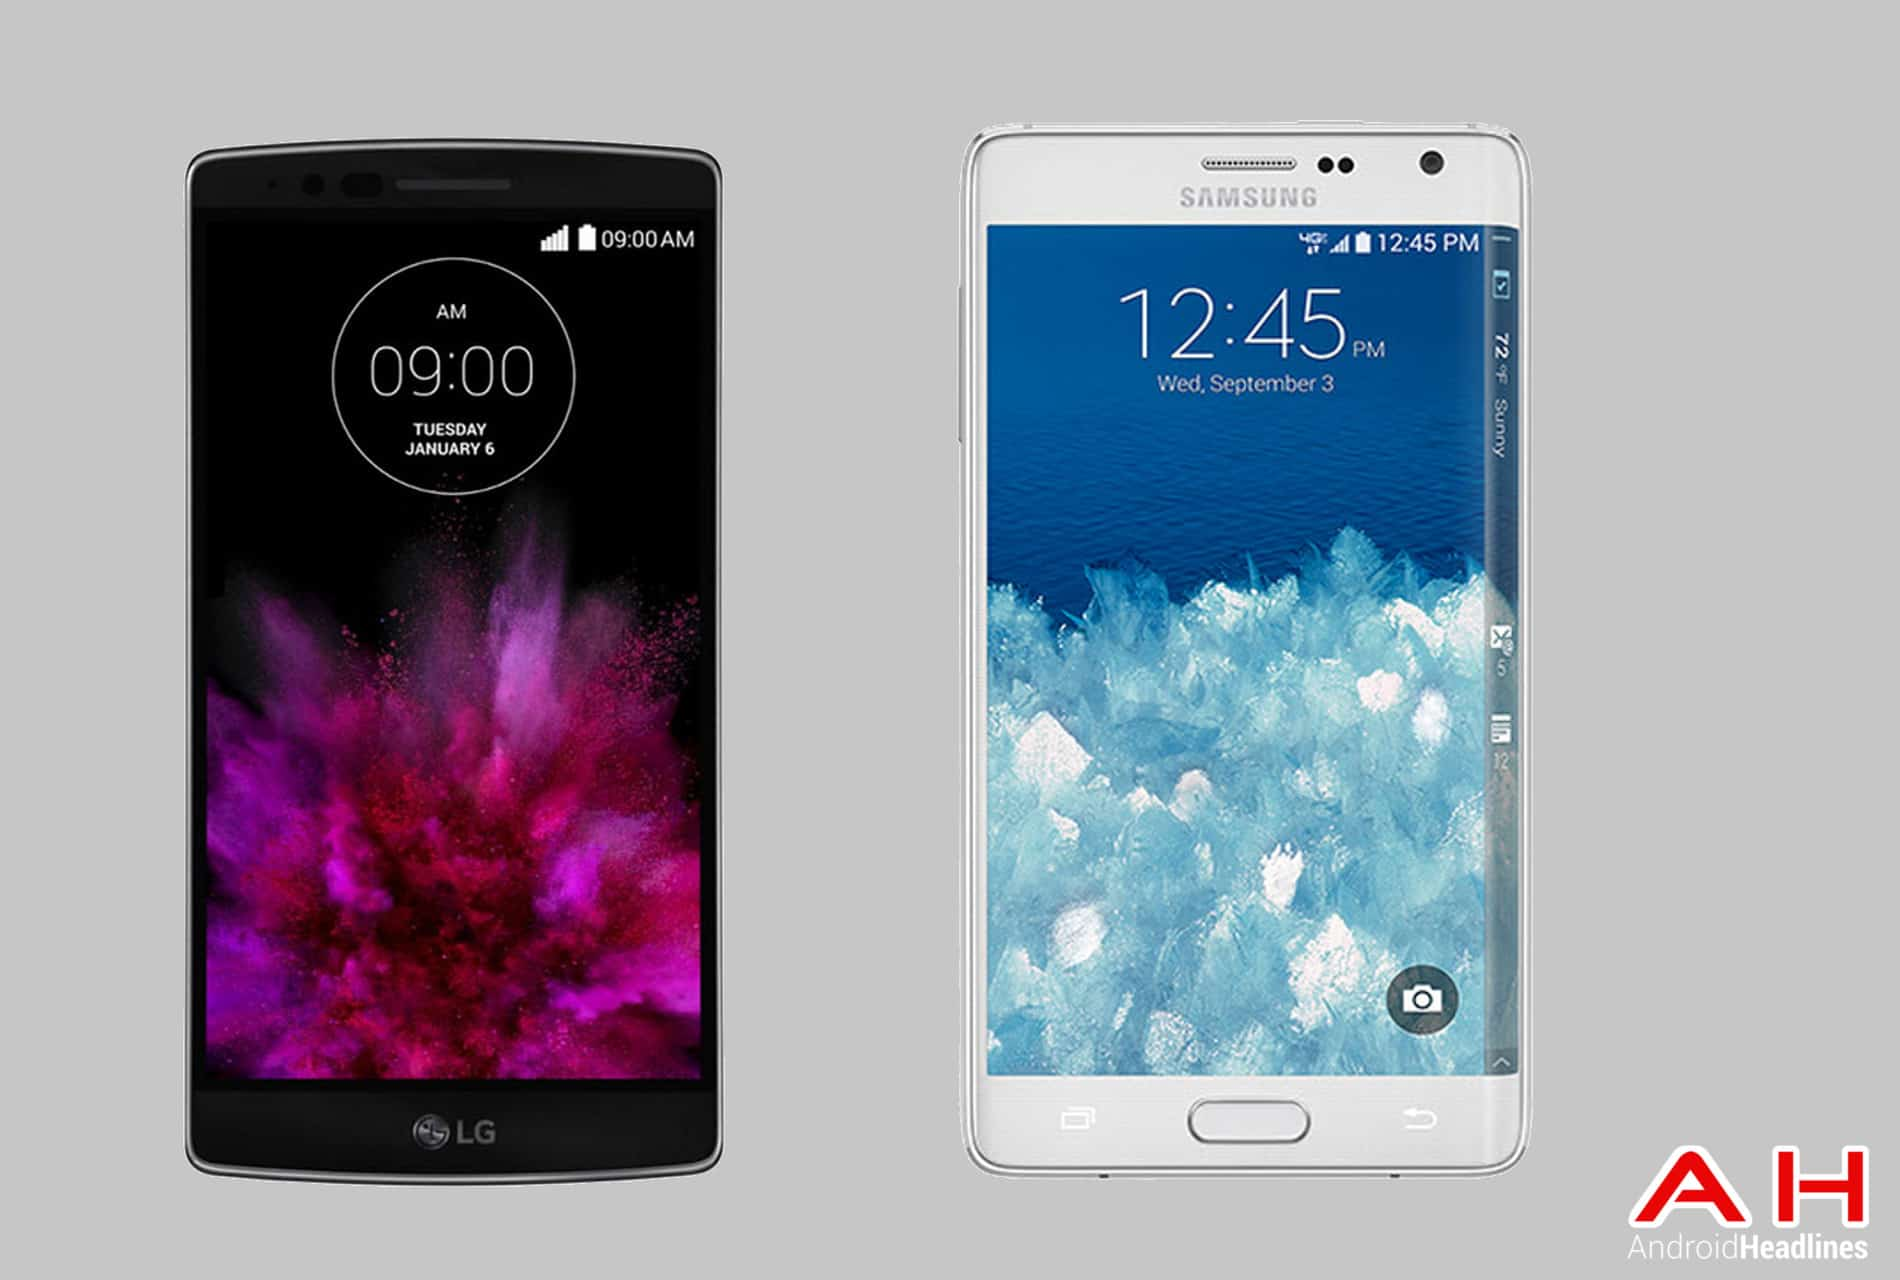 samsung phones 2015. phone comparisons: lg g flex 2 vs samsung galaxy note edge | androidheadlines.com phones 2015